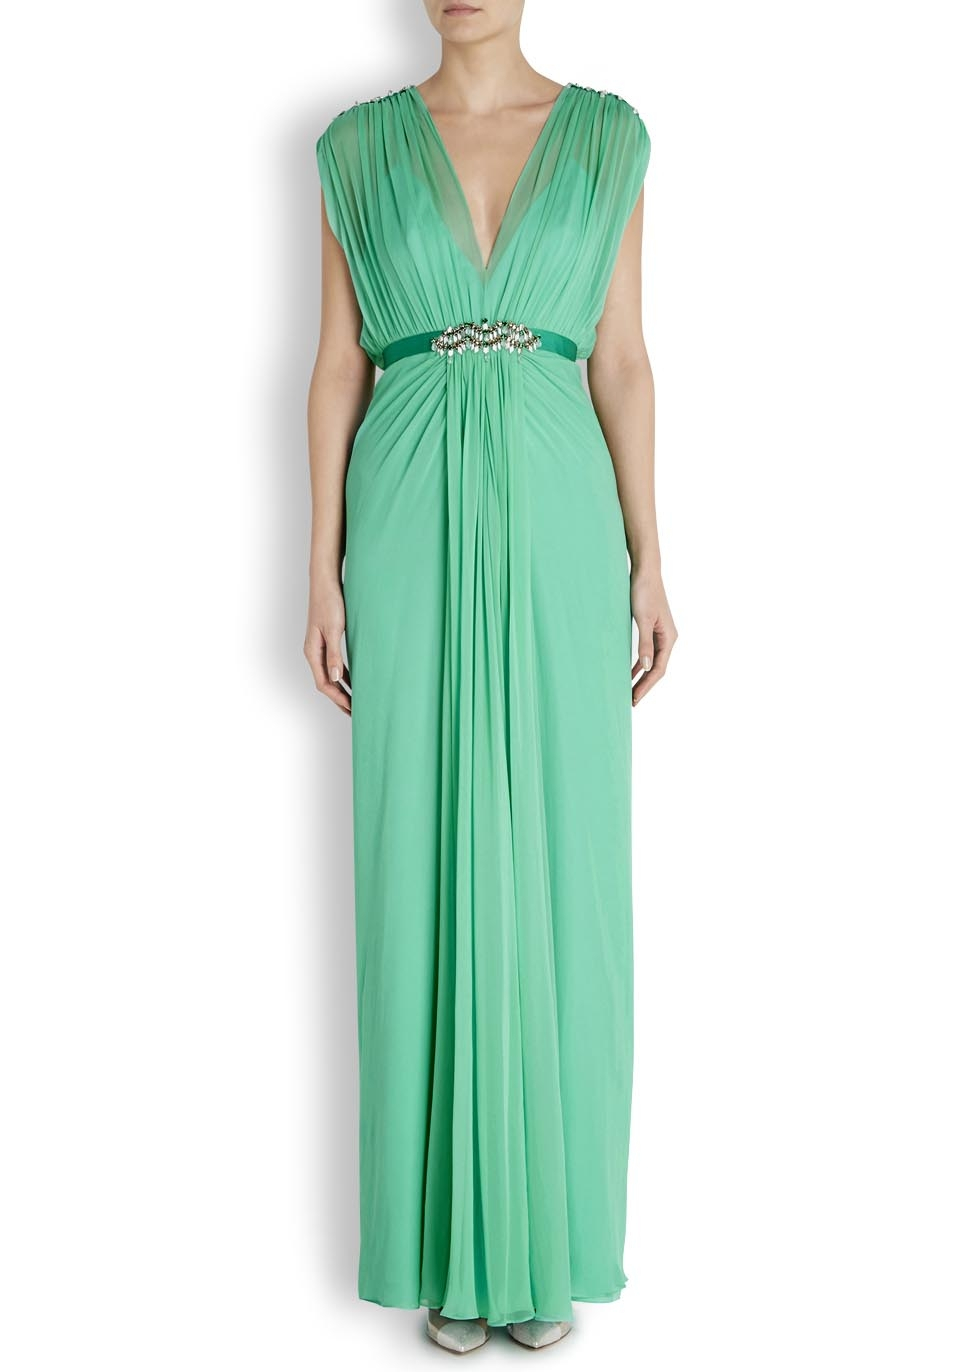 Jenny Packham Mint Green Embellished Silk Gown in Green - Lyst